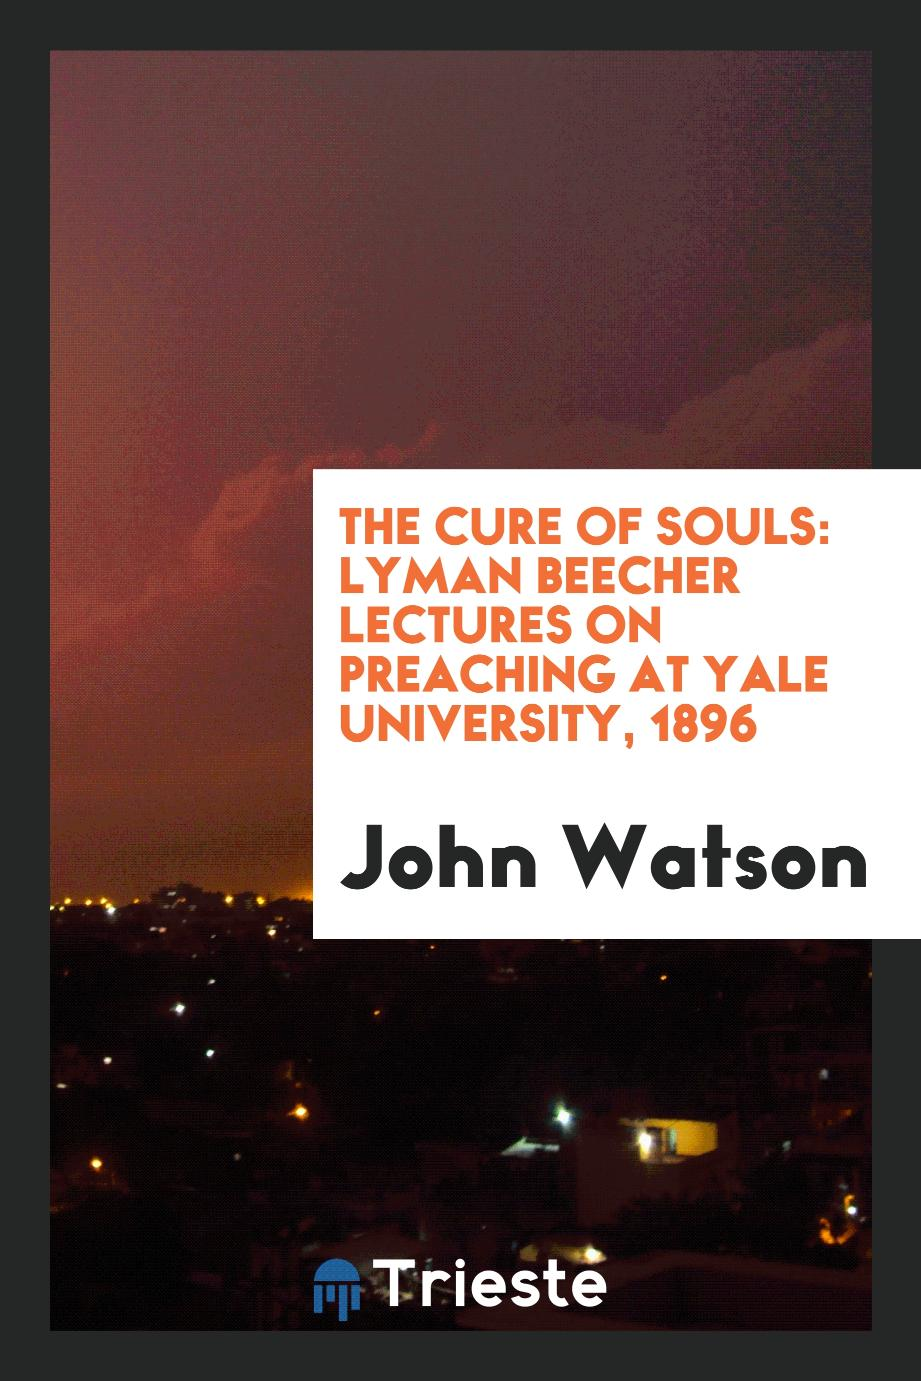 The Cure of Souls: Lyman Beecher Lectures on Preaching at Yale University, 1896